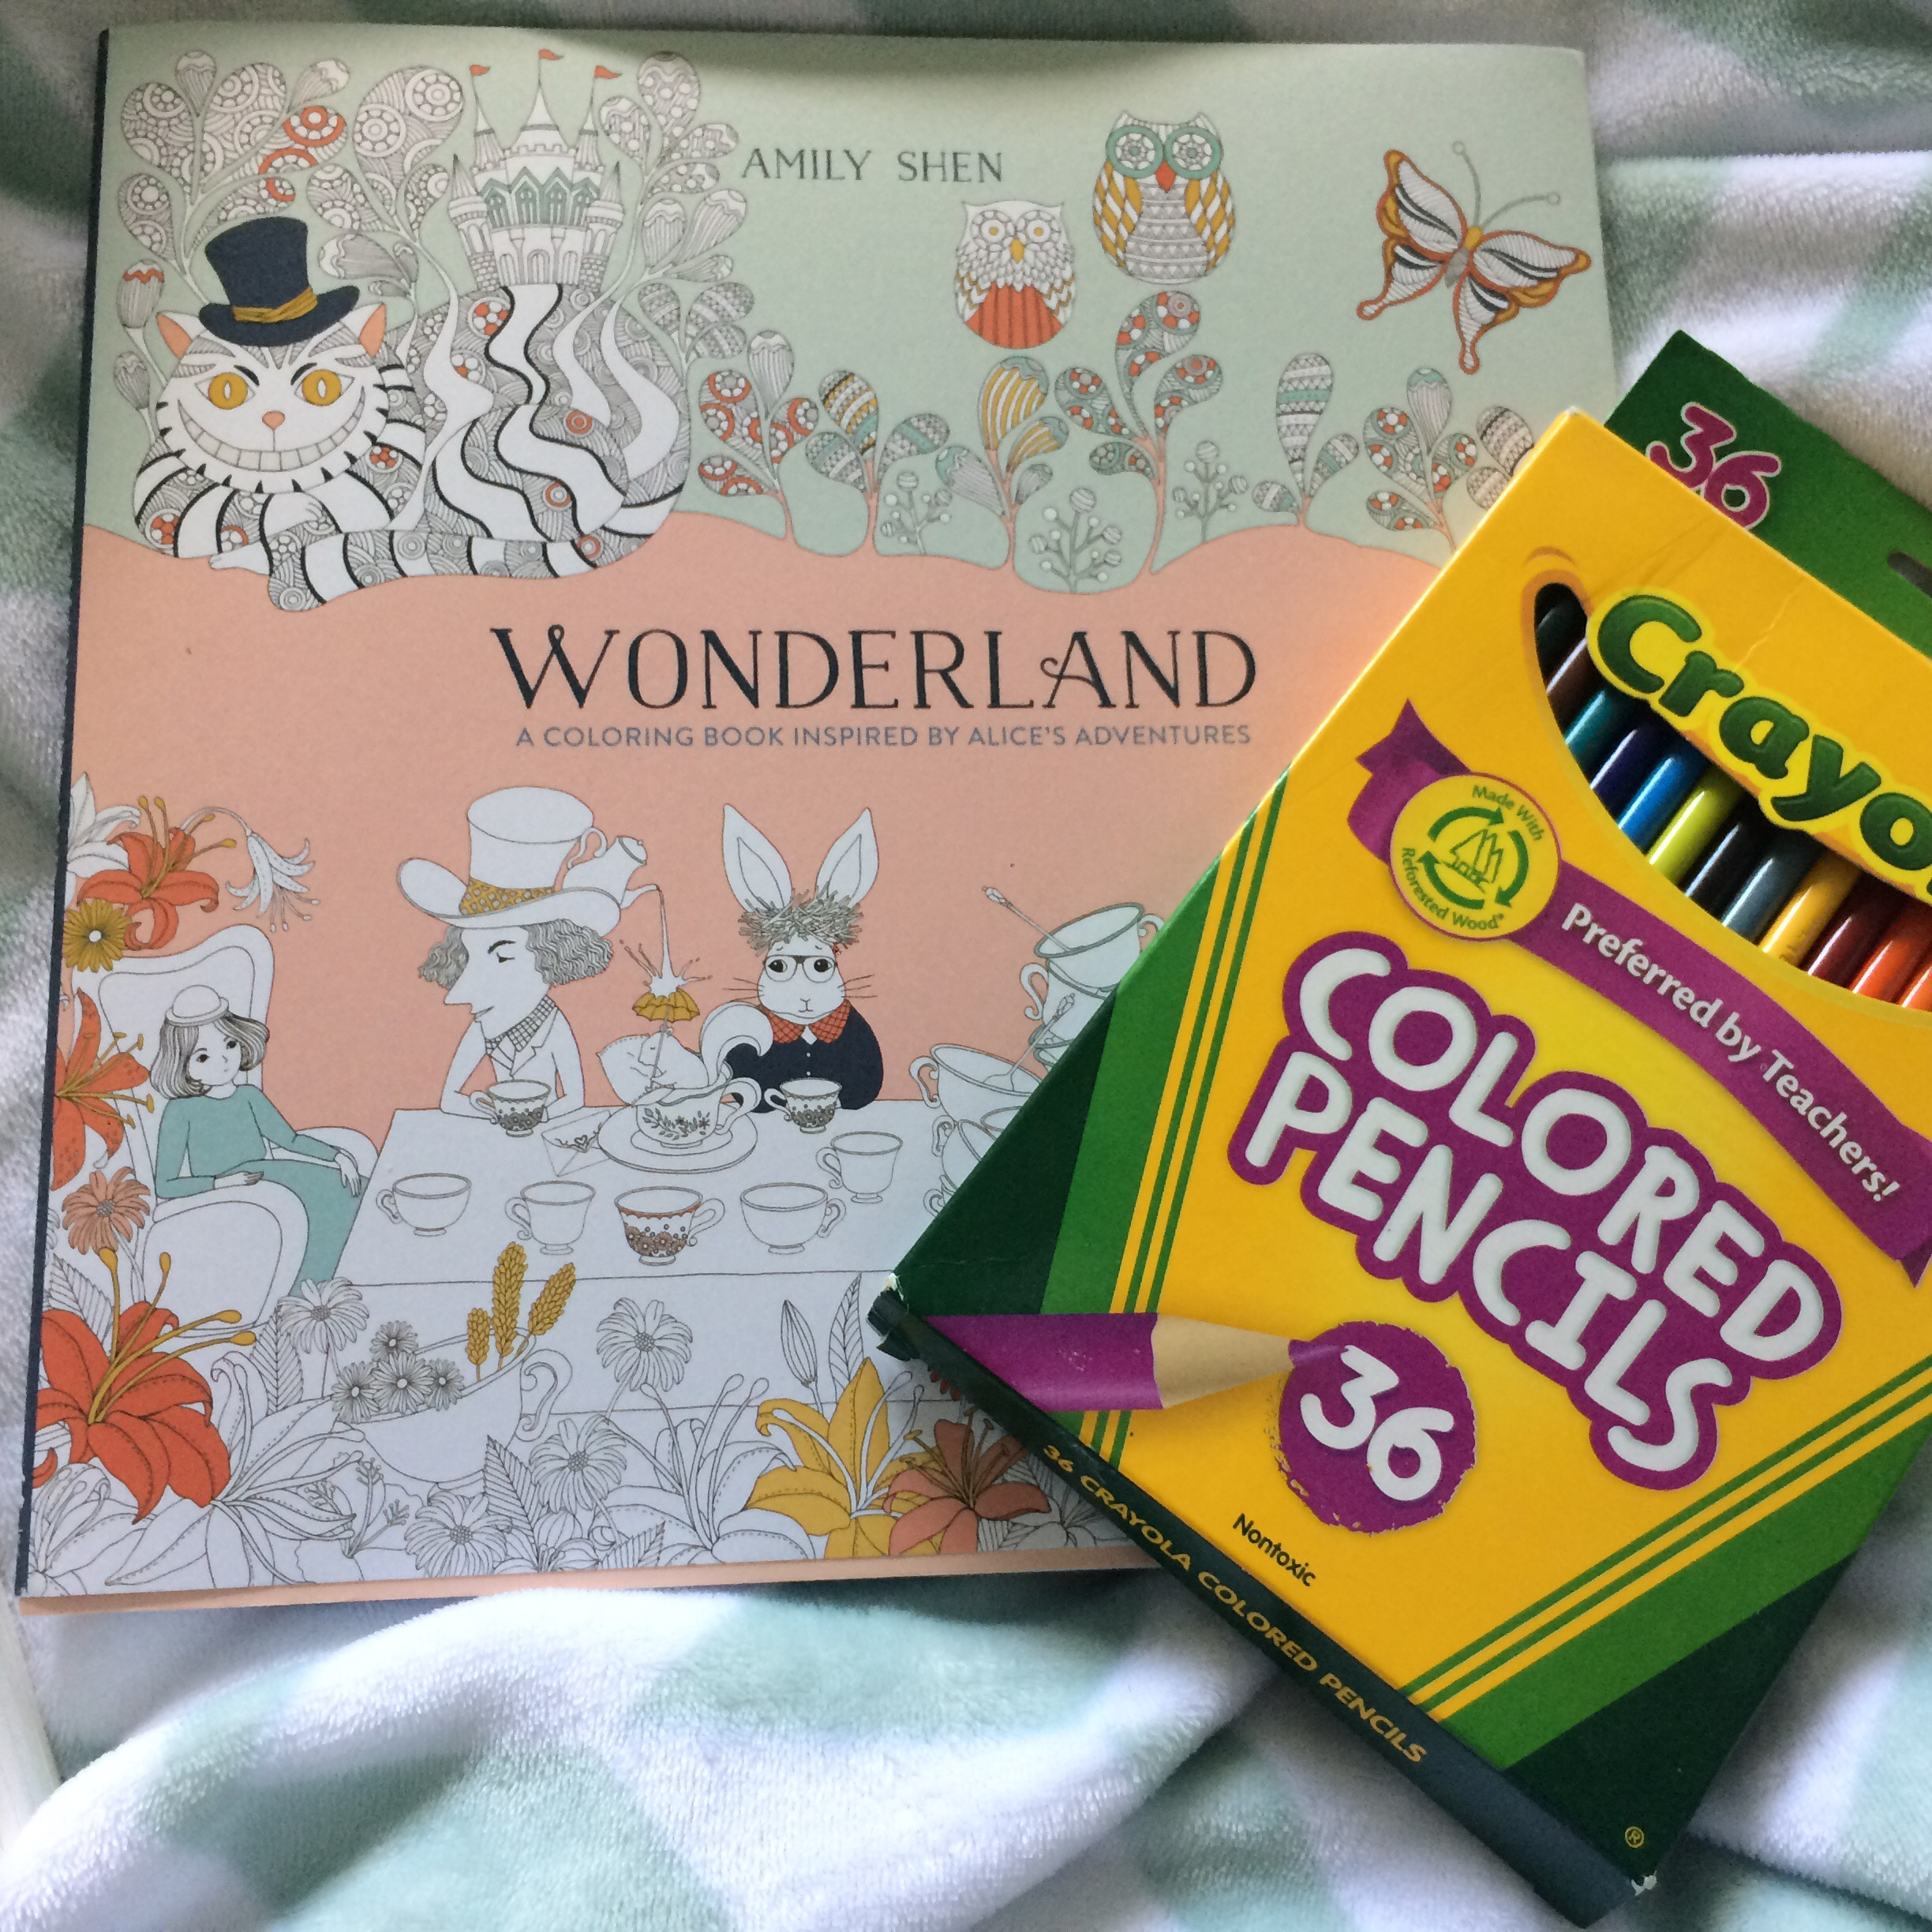 How much is the coloring book for adults - The Reason Why I Love This Book So Much Is More Than Just The Beautiful Illustrations It S The Way It Engages The Reader The Book Makes You The Main